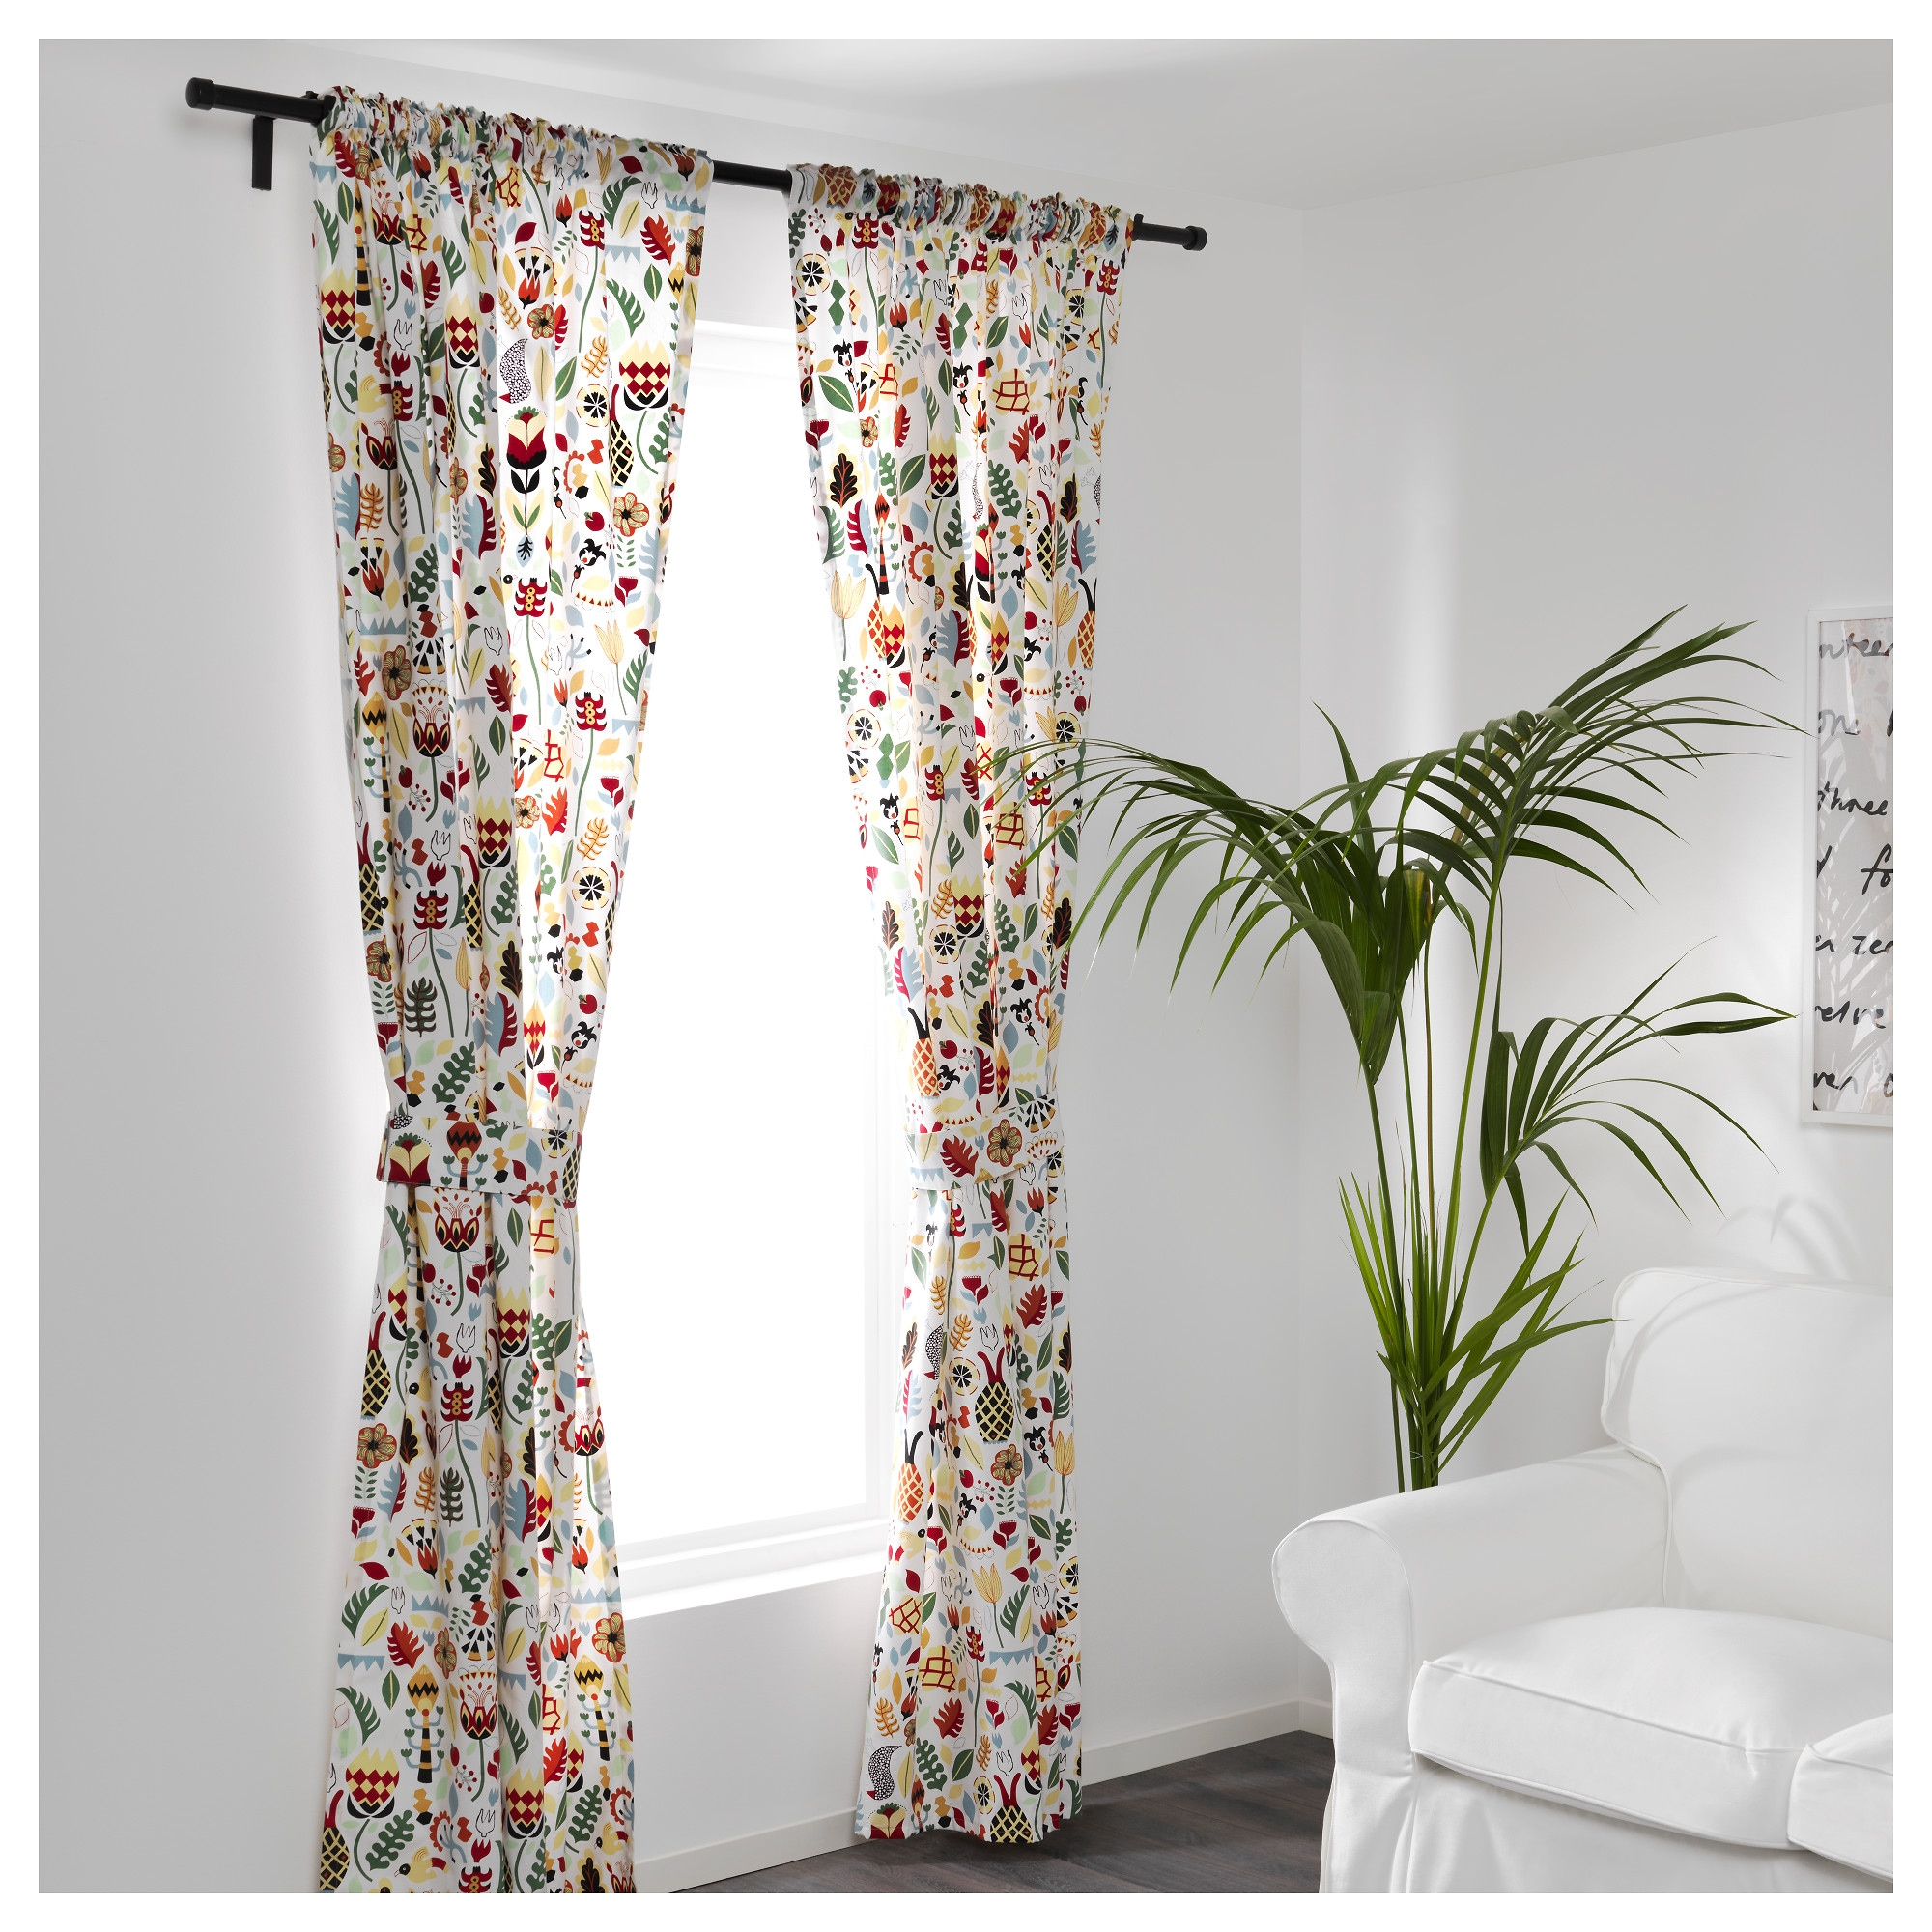 RÖDARV Curtains with tie-backs, 1 pair - IKEA